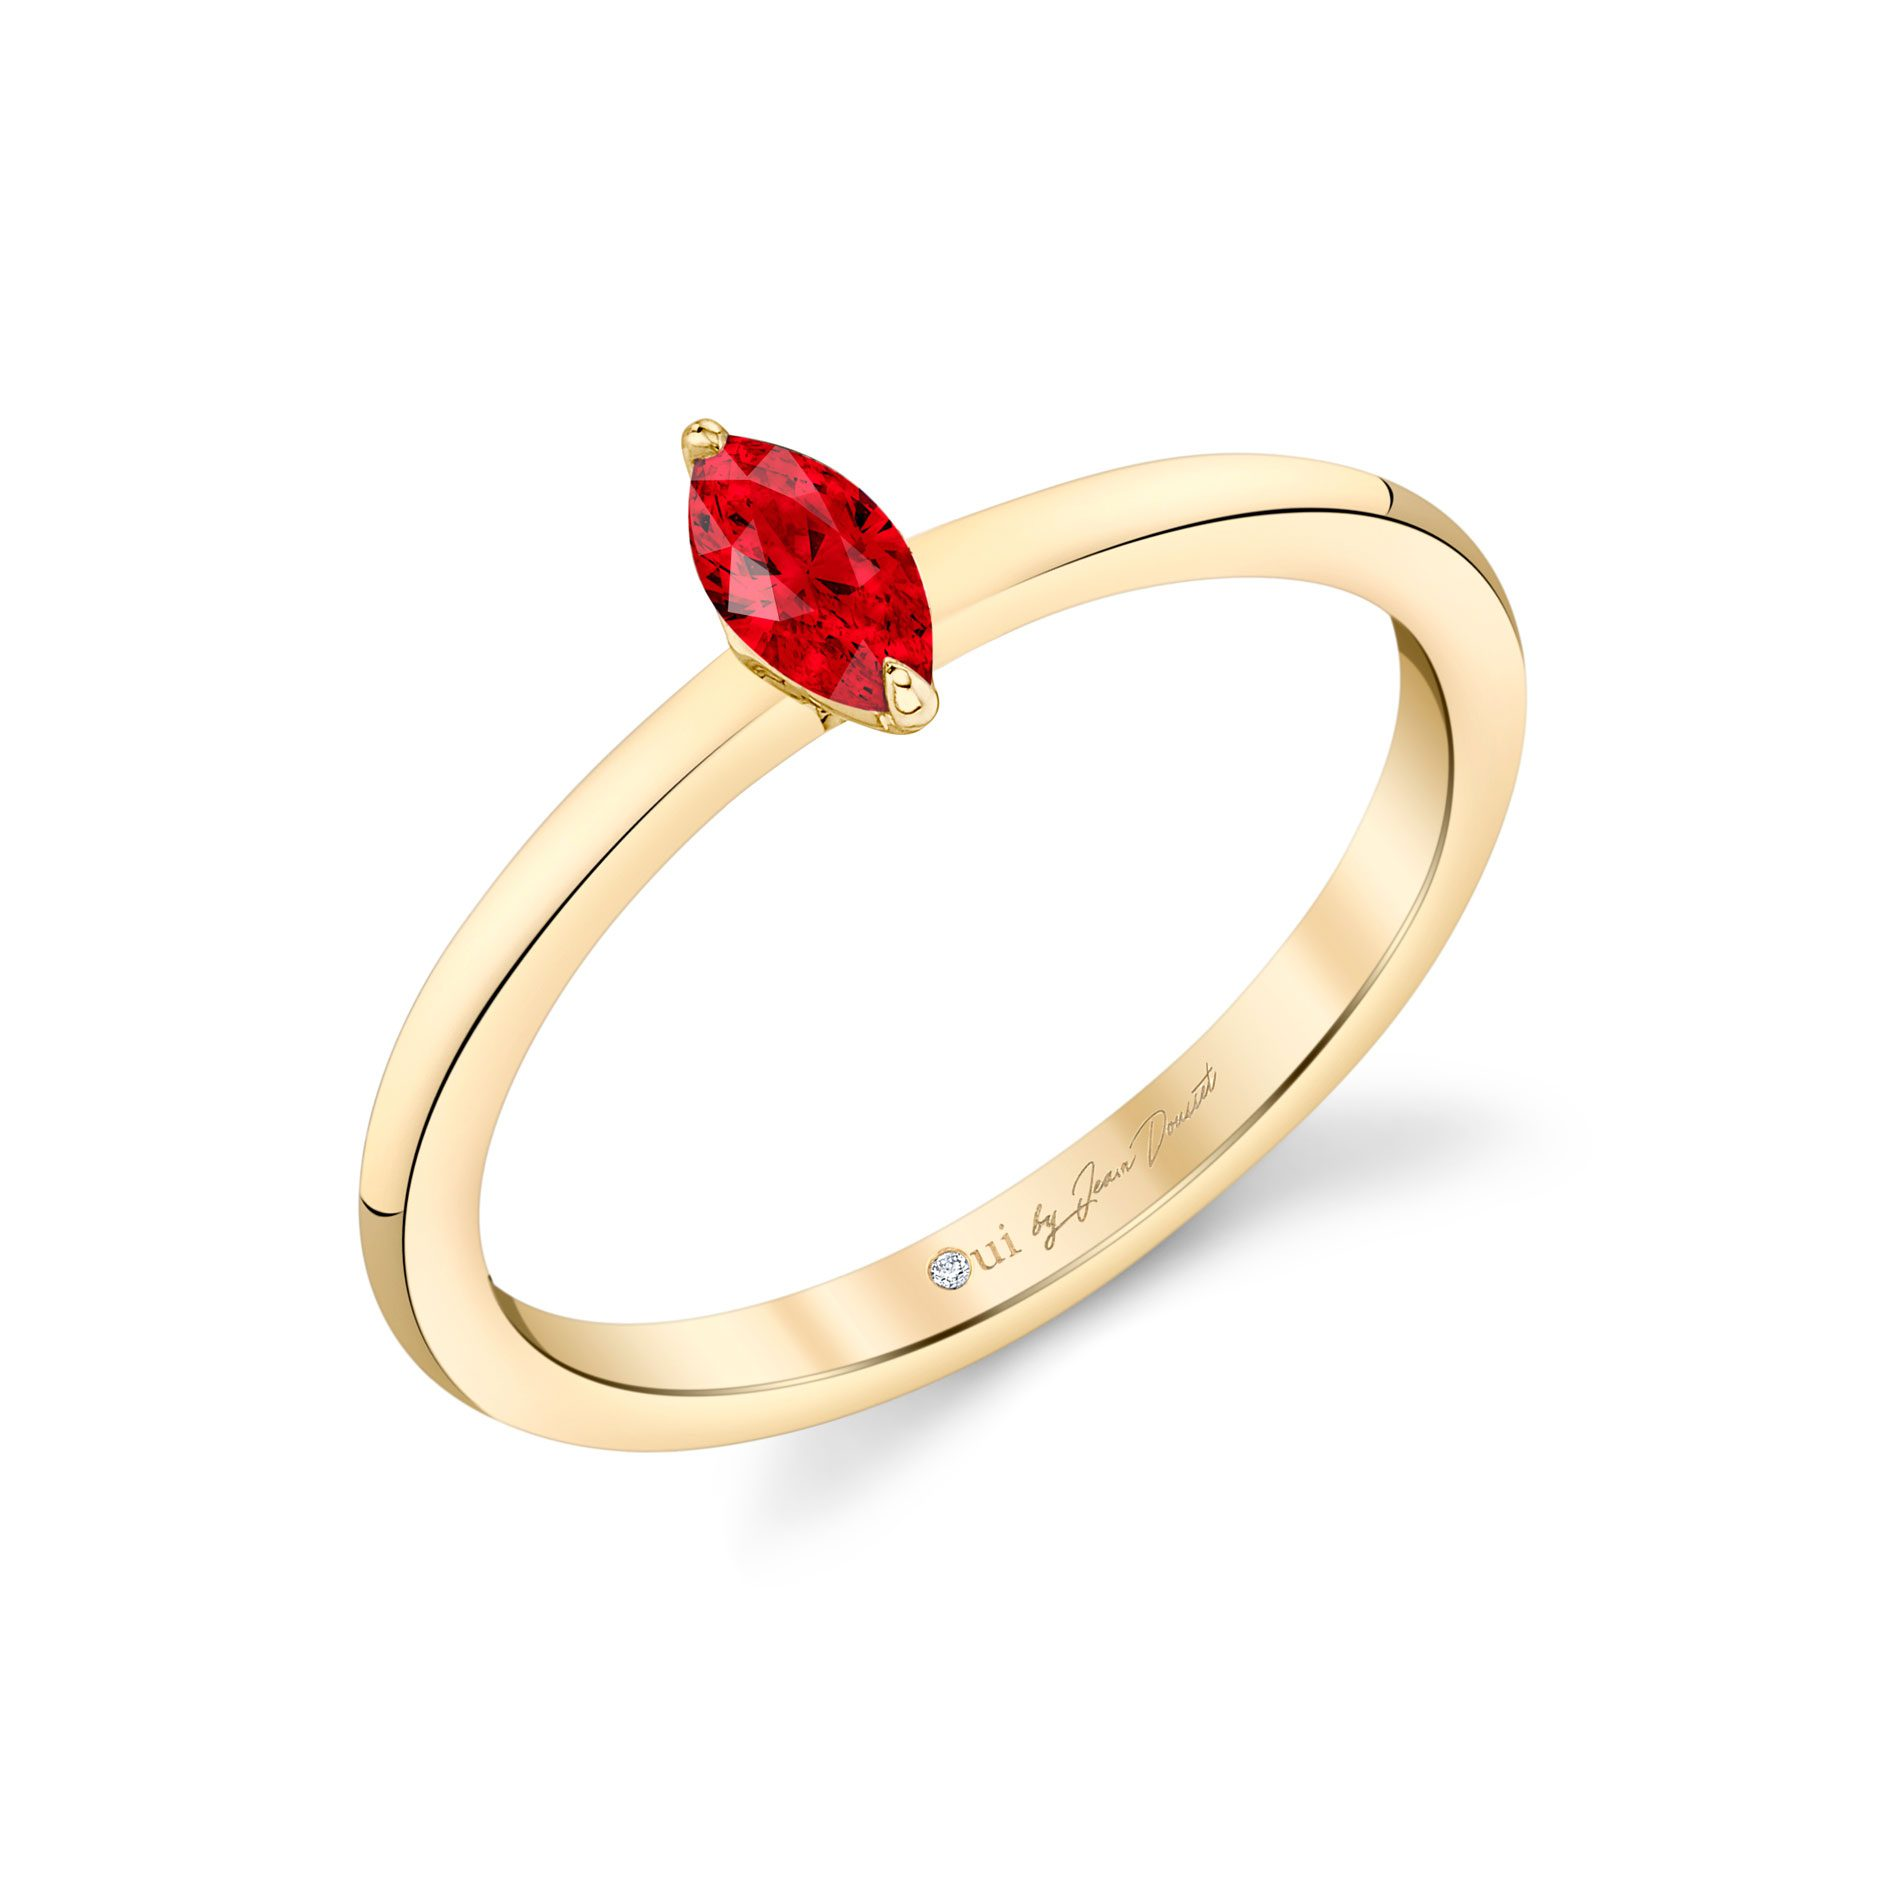 La Petite Marquise Ruby Ring in 18k Yellow Gold Profile View by Oui by Jean Dousset